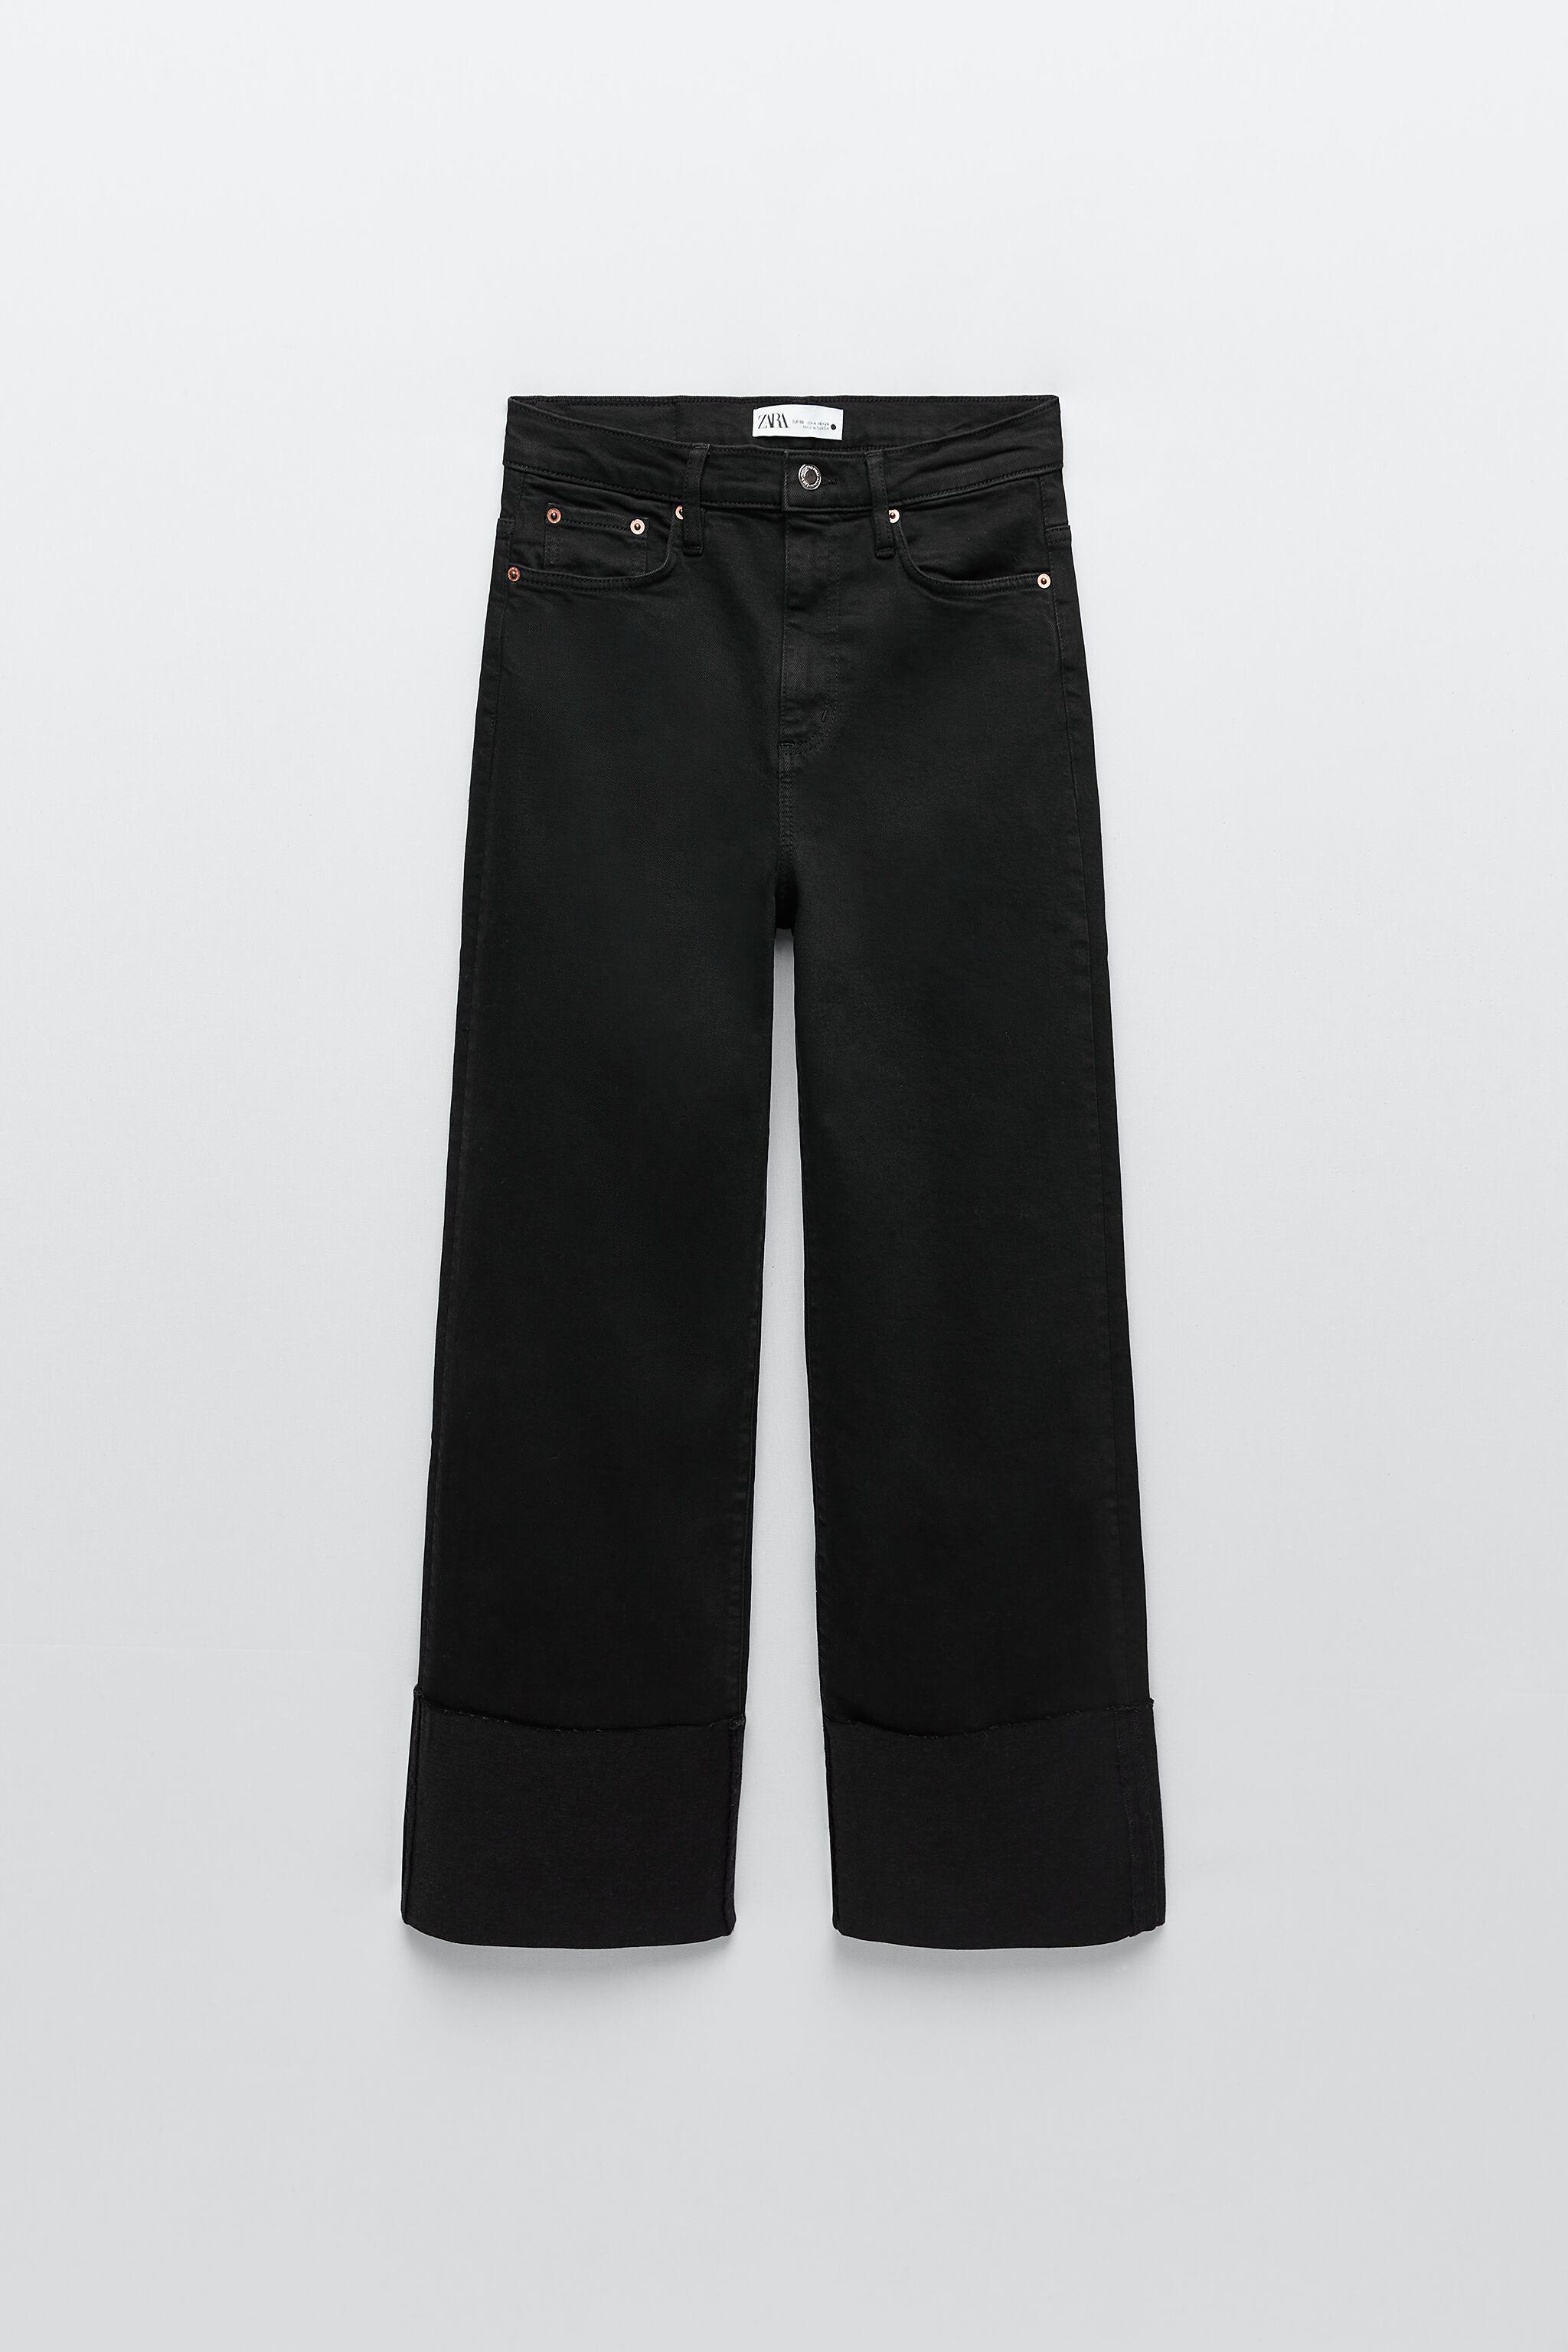 ZW THE FOLDED UP JEANS 6